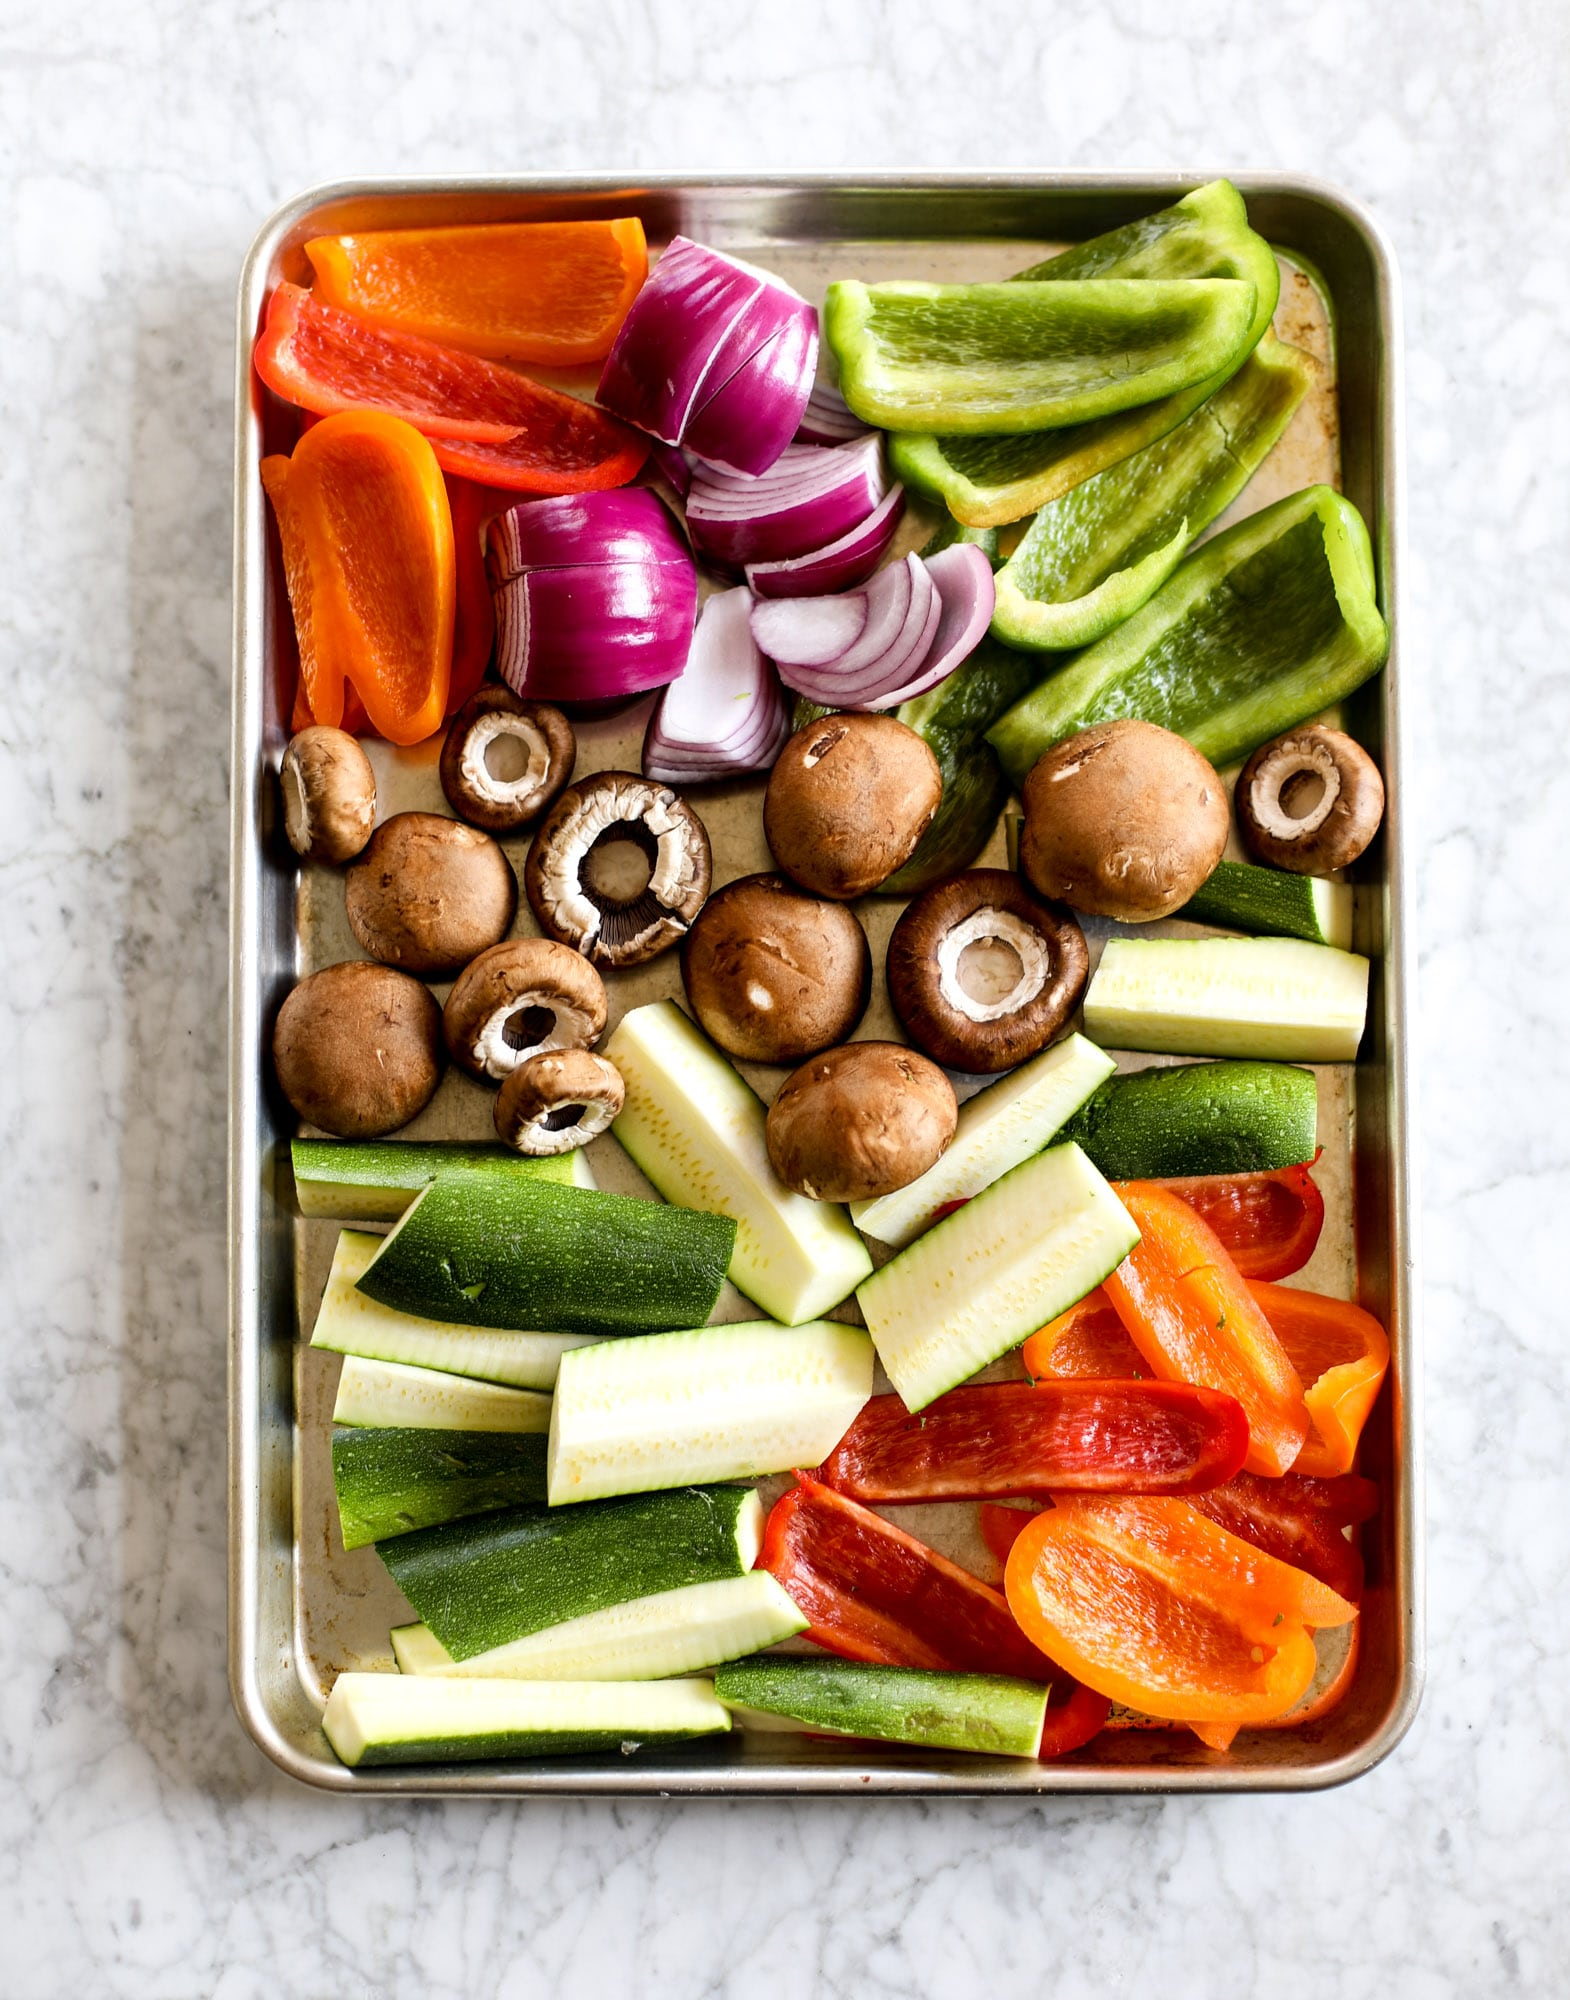 These are the best grilled vegetables ever! You grill your veggies and chop them into the perfect bite, then drizzle them with a fabulous fresh basil vinaigrette. Delish! It doesn't end there; serve these with grilled garlic toast and everyone will freak! I howsweeteats.com #best #grilled #vegetables #veggies #basil #bread